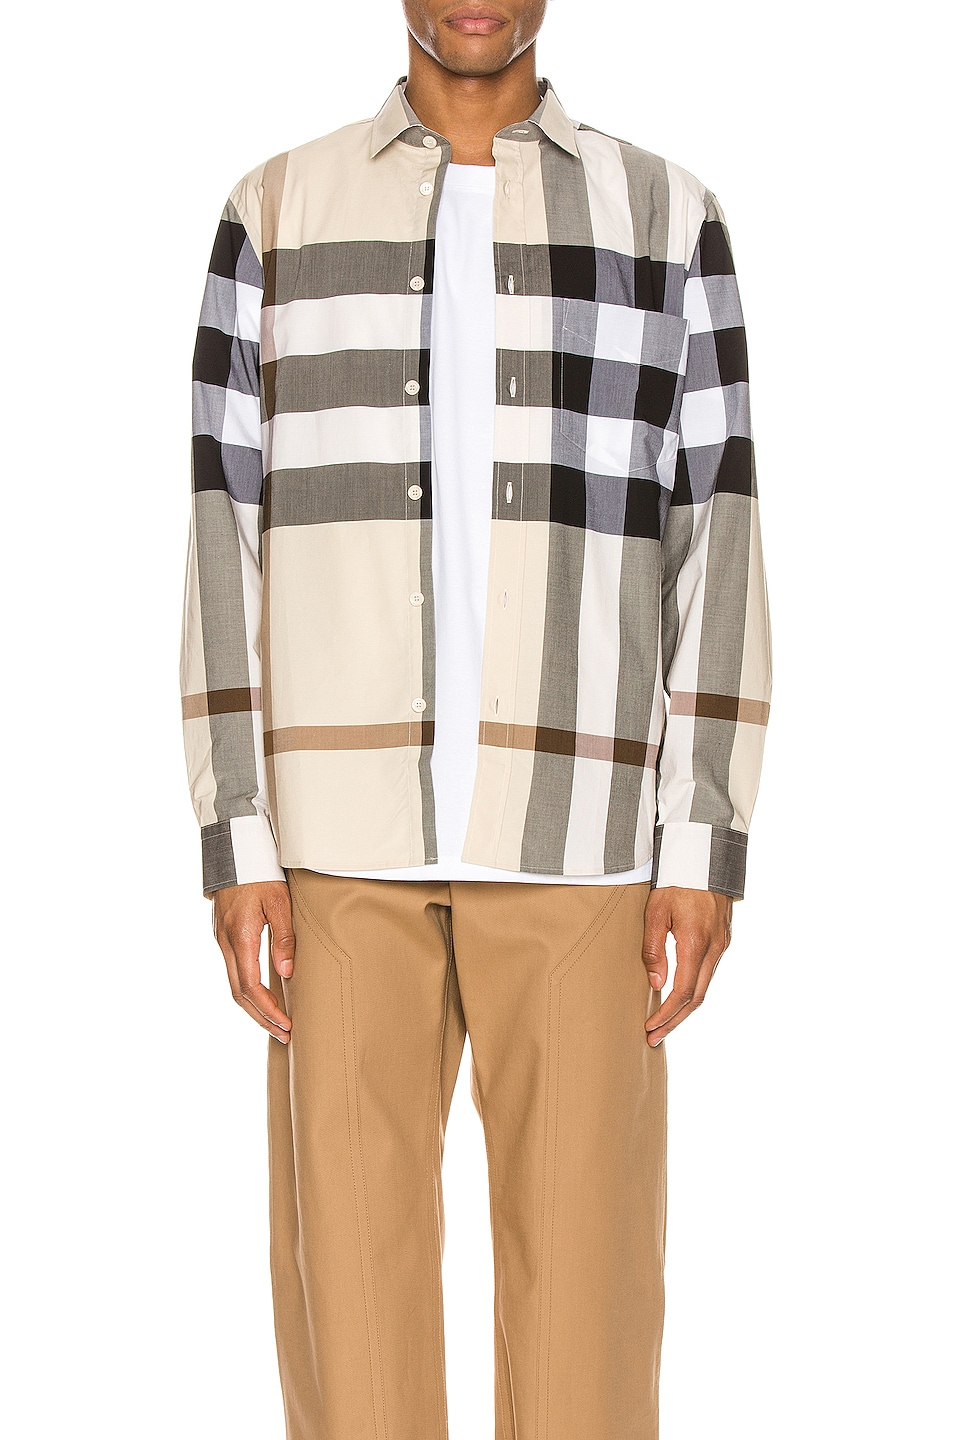 Image 1 of Burberry Somerton Long Sleeve Shirt in Modern Beige IP Check